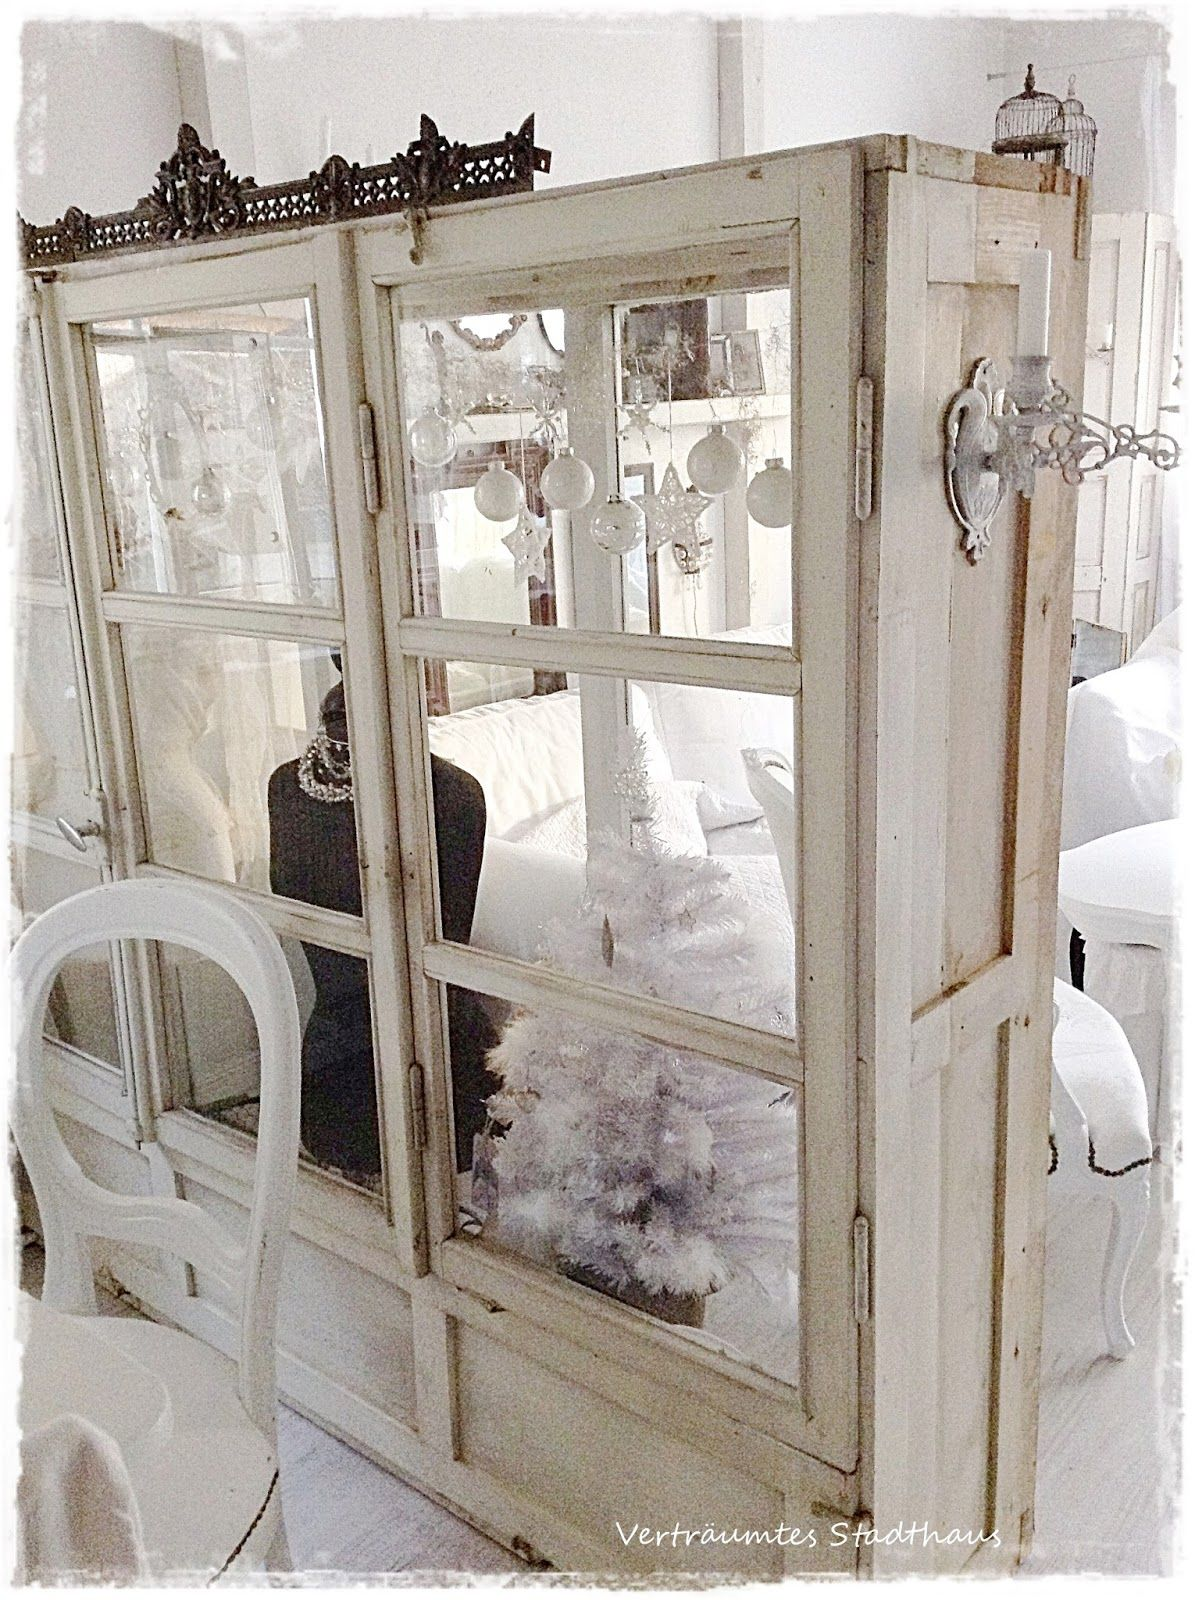 Wohnzimmer Im Landhausstil An Weihnachten Cabinet Made From Salvaged Windows This Is A Creative